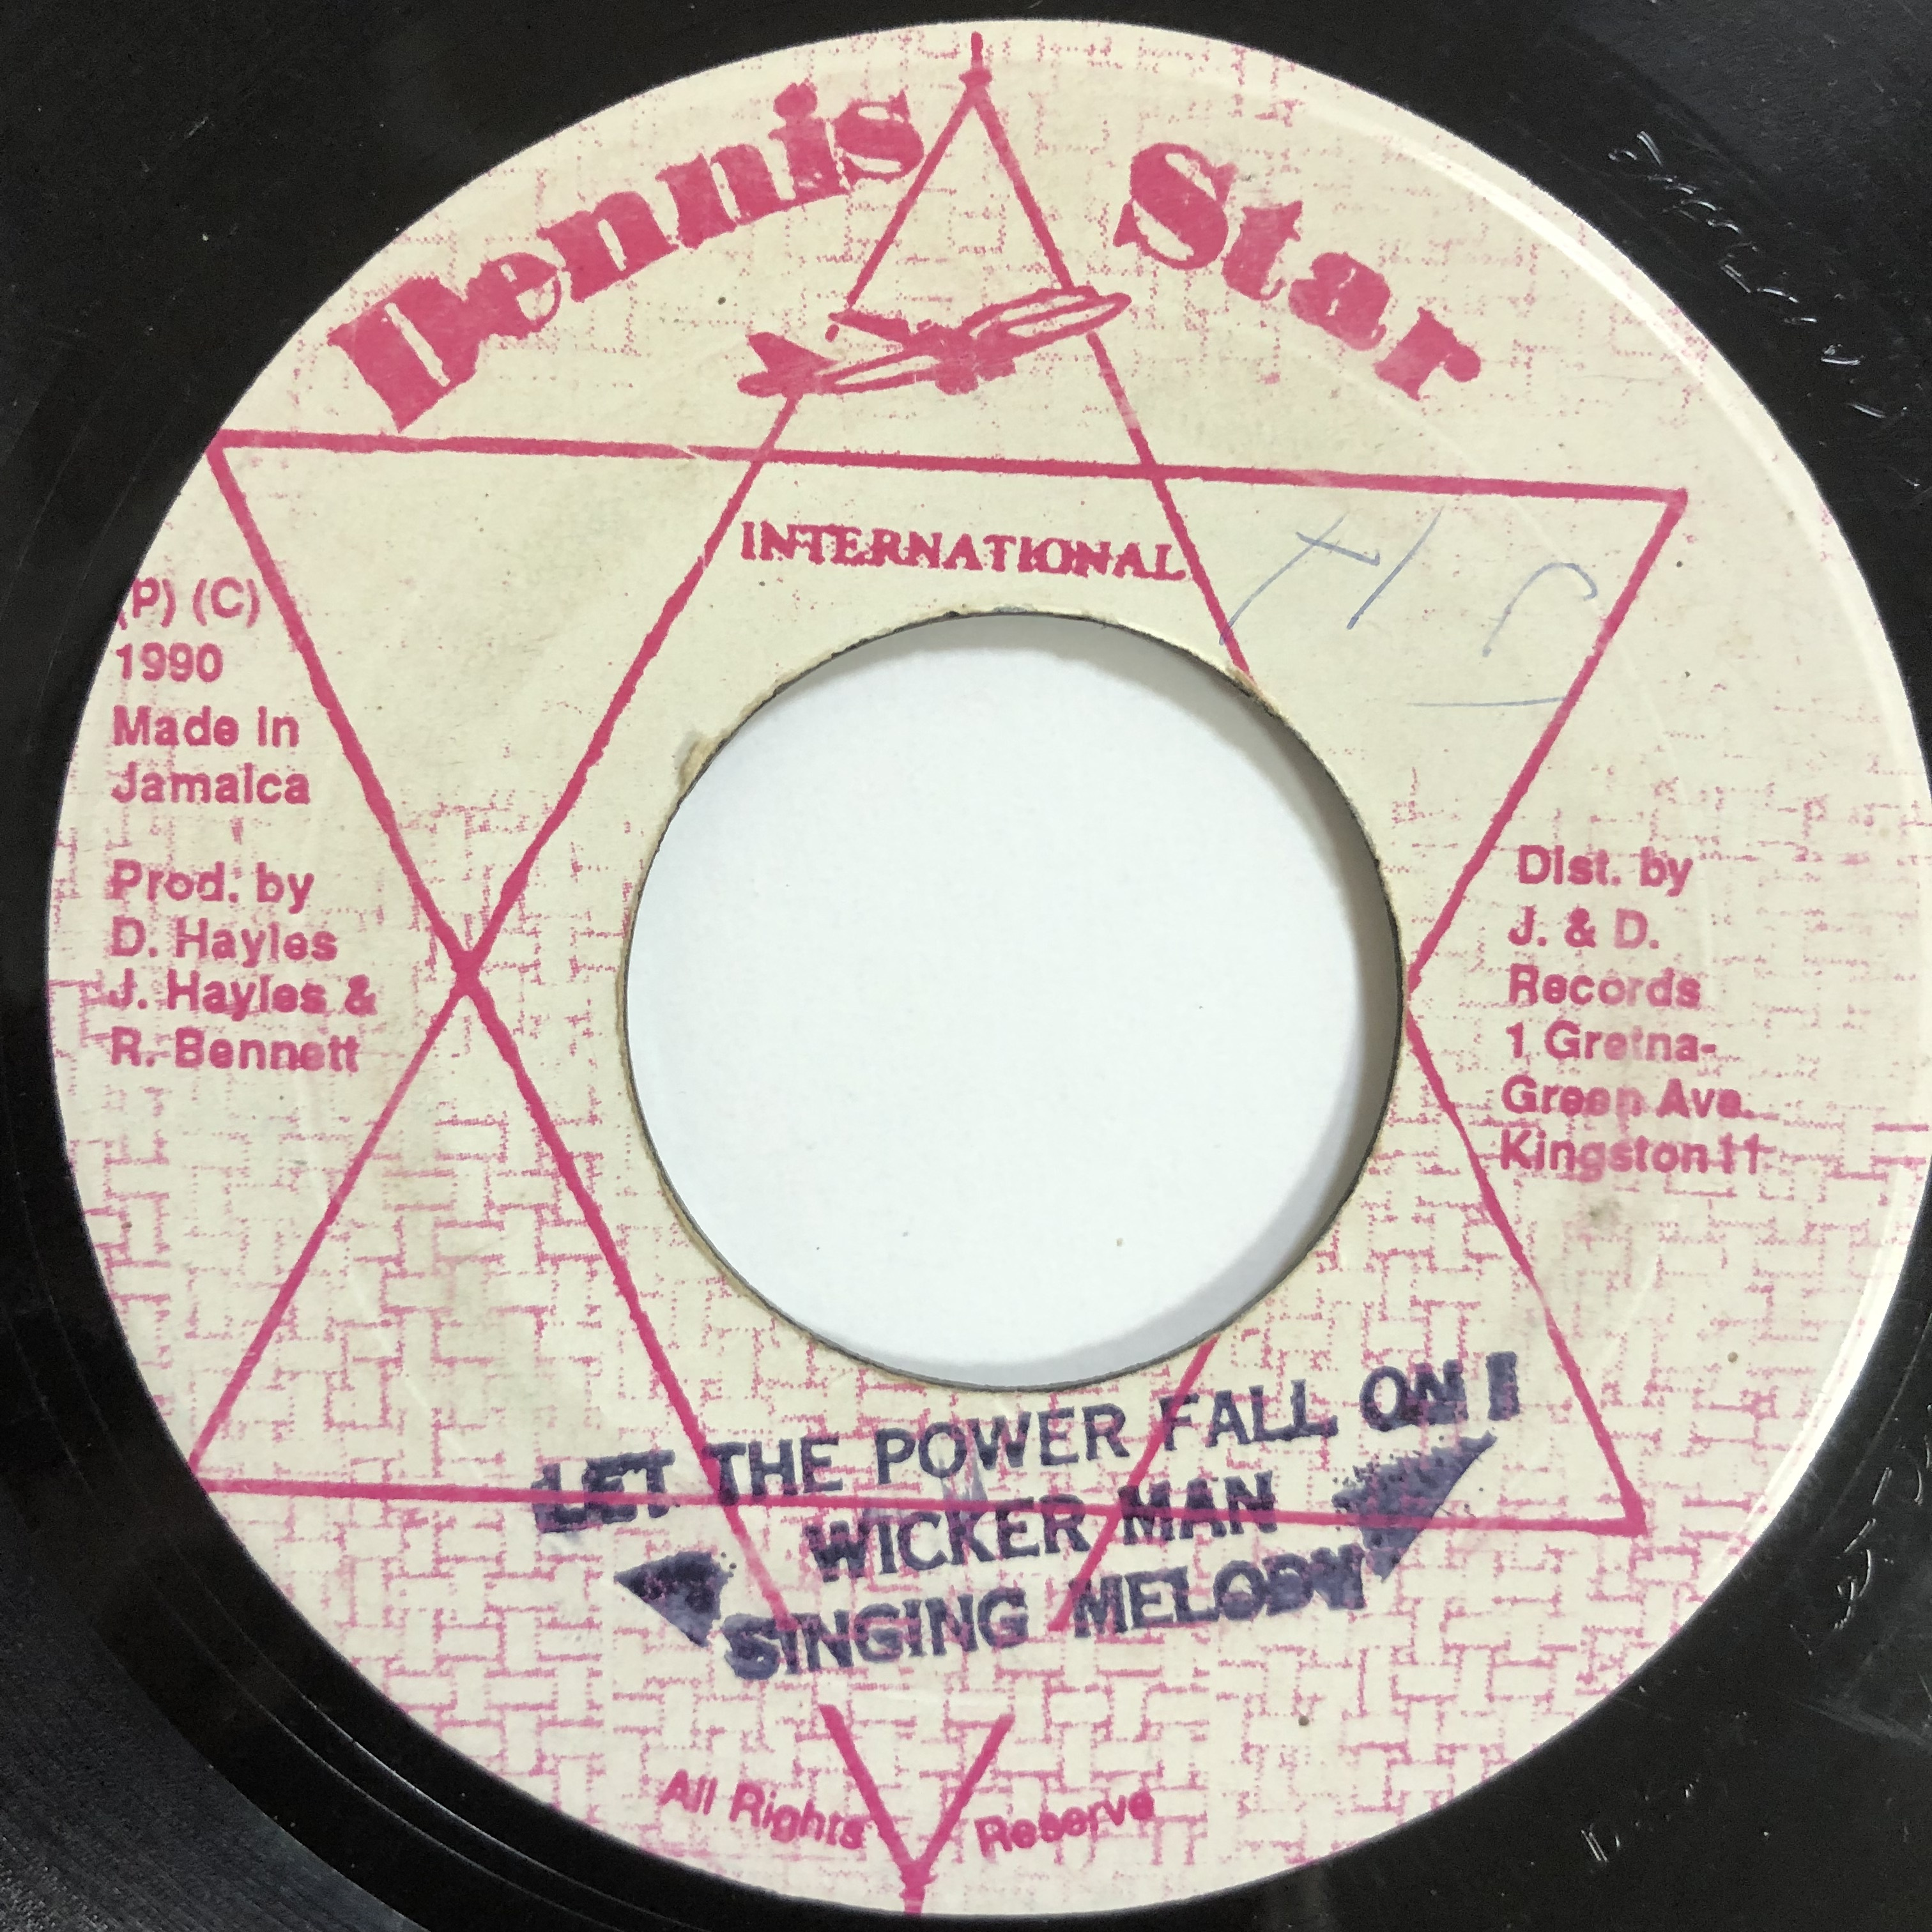 Wicker Man, Singing Melody – Let The Power Fall On I【7-20132】